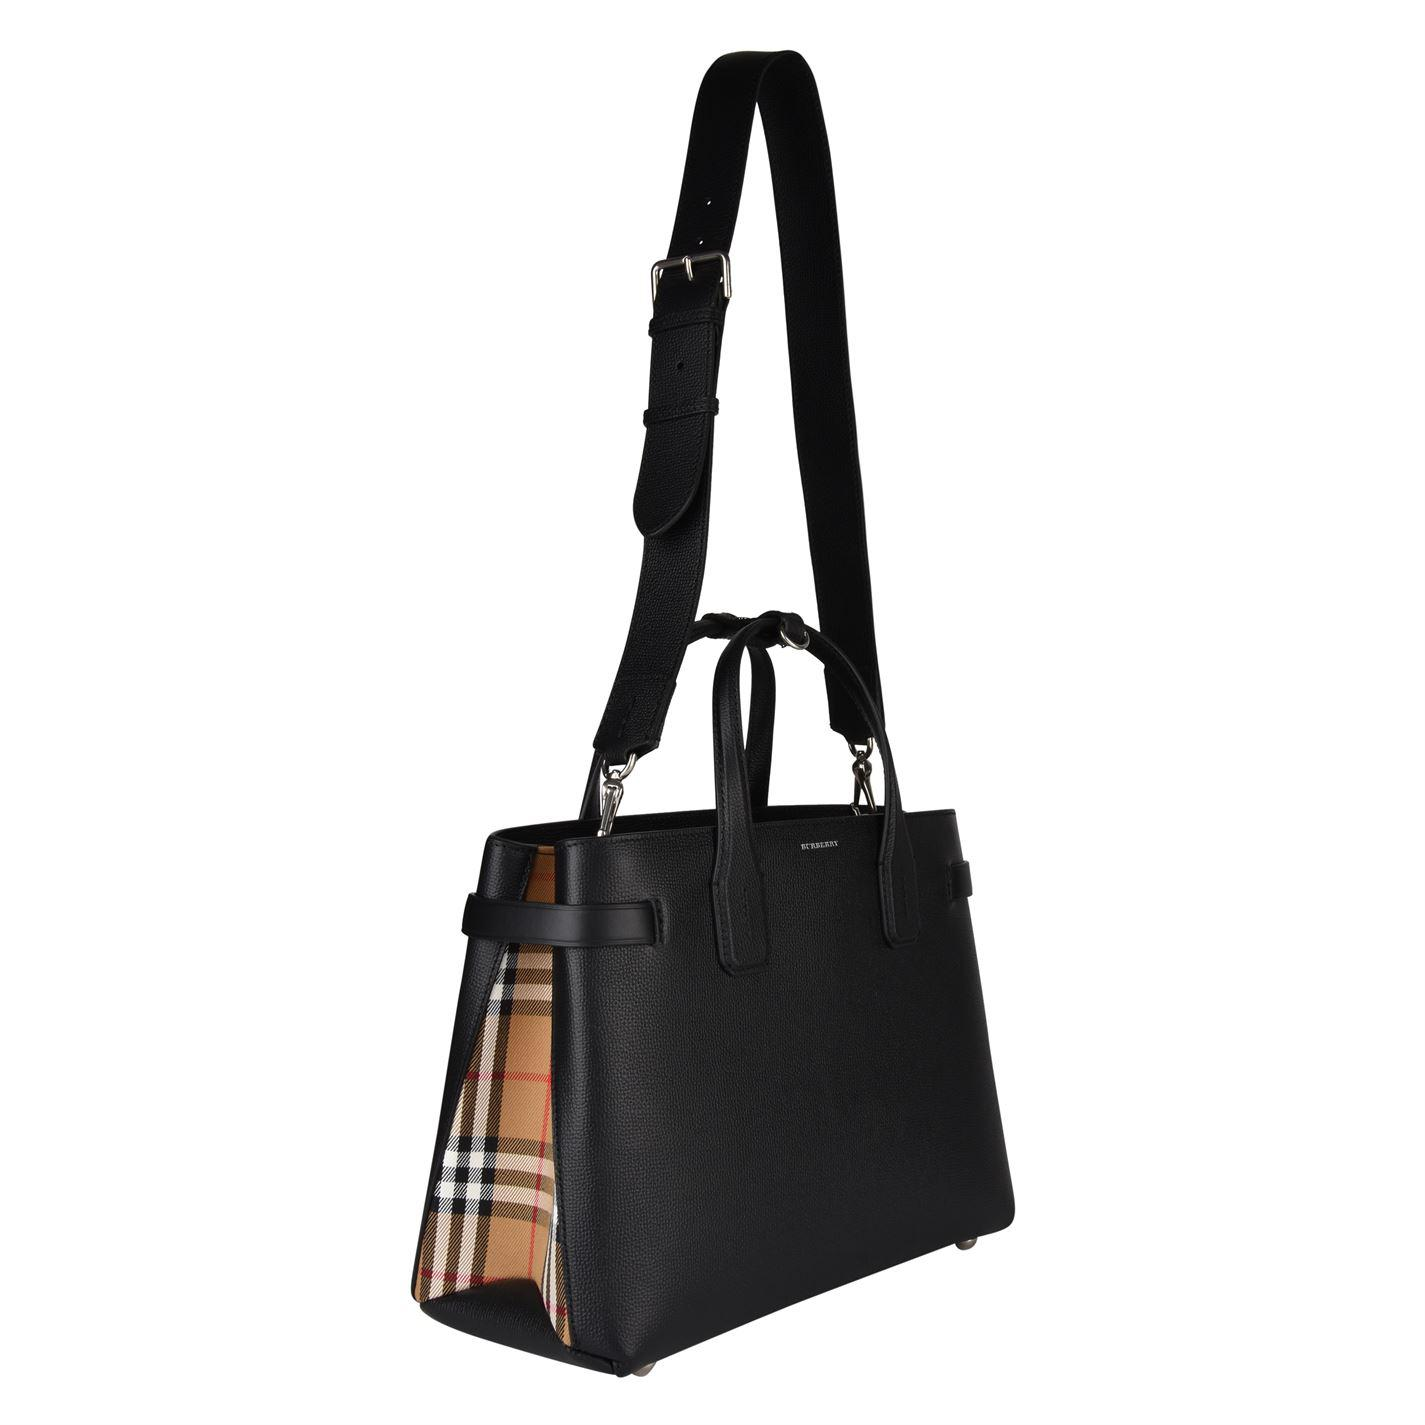 Burberry - Black Medium Banner Leather And Vintage Check Bag - Lyst. View  fullscreen 416255784c